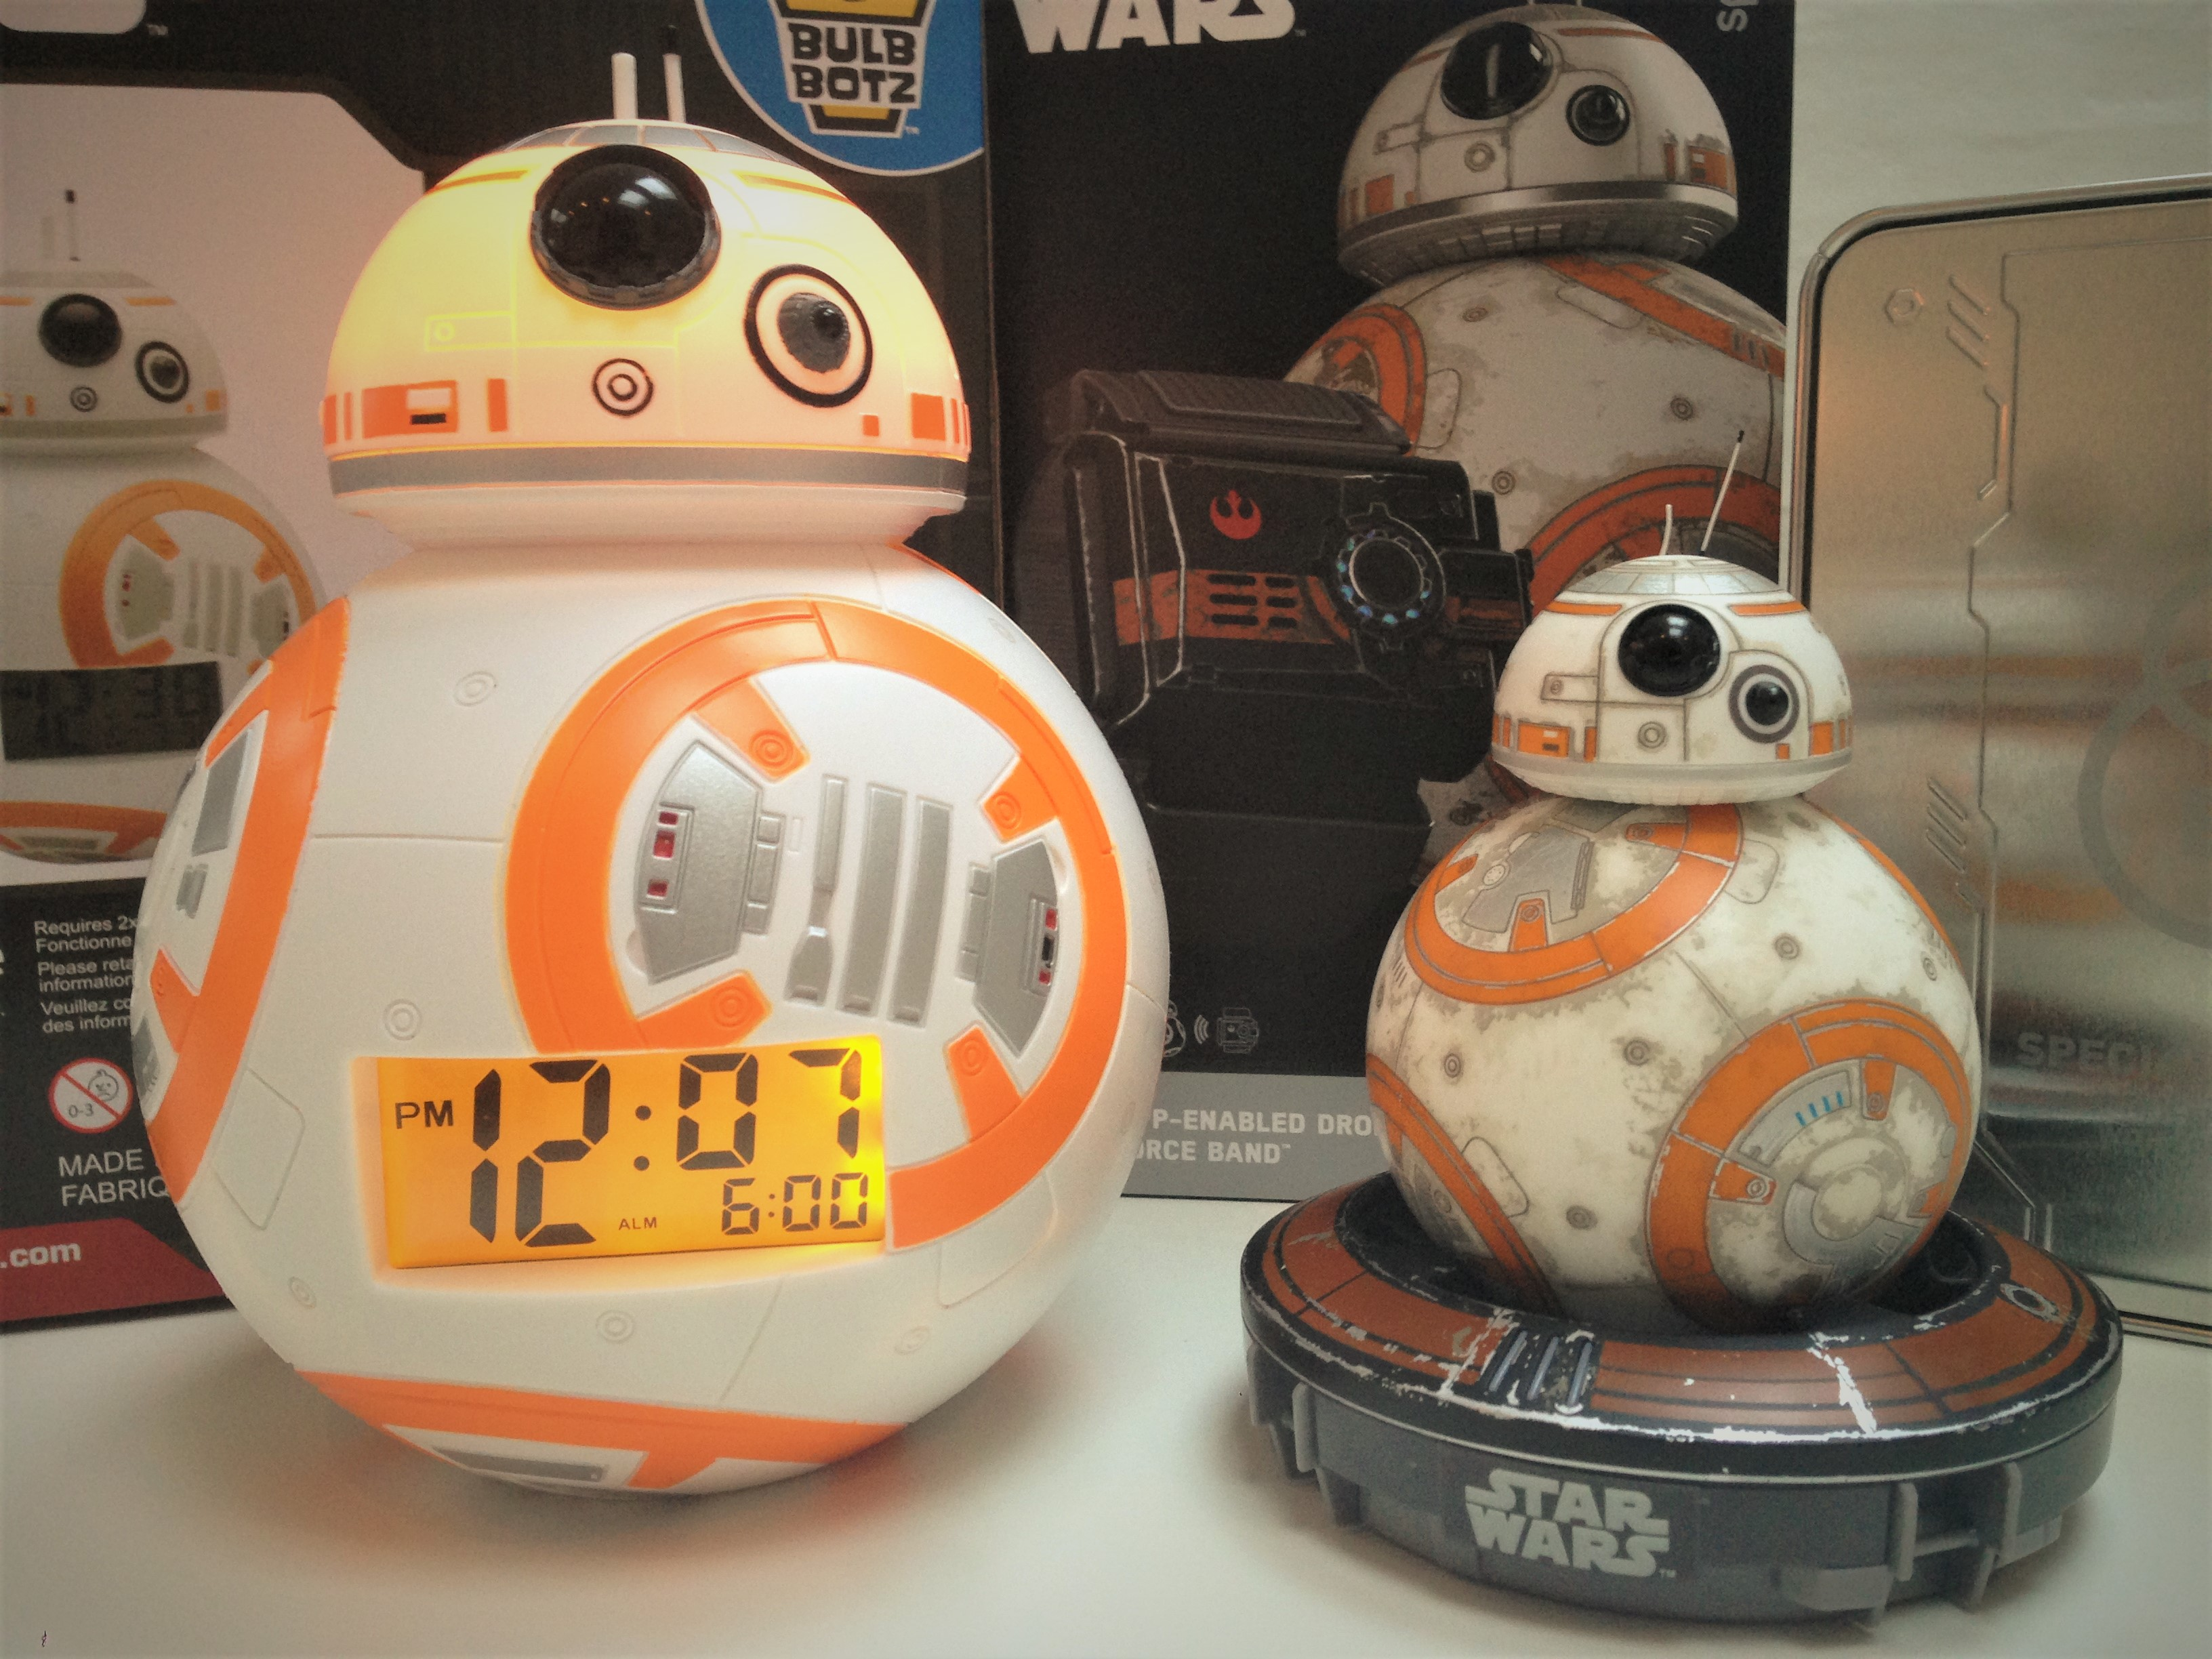 bb-8-star-wars-sphero-battle-worn-bb-8-disney-coolstuff-fiktion-kultur-2